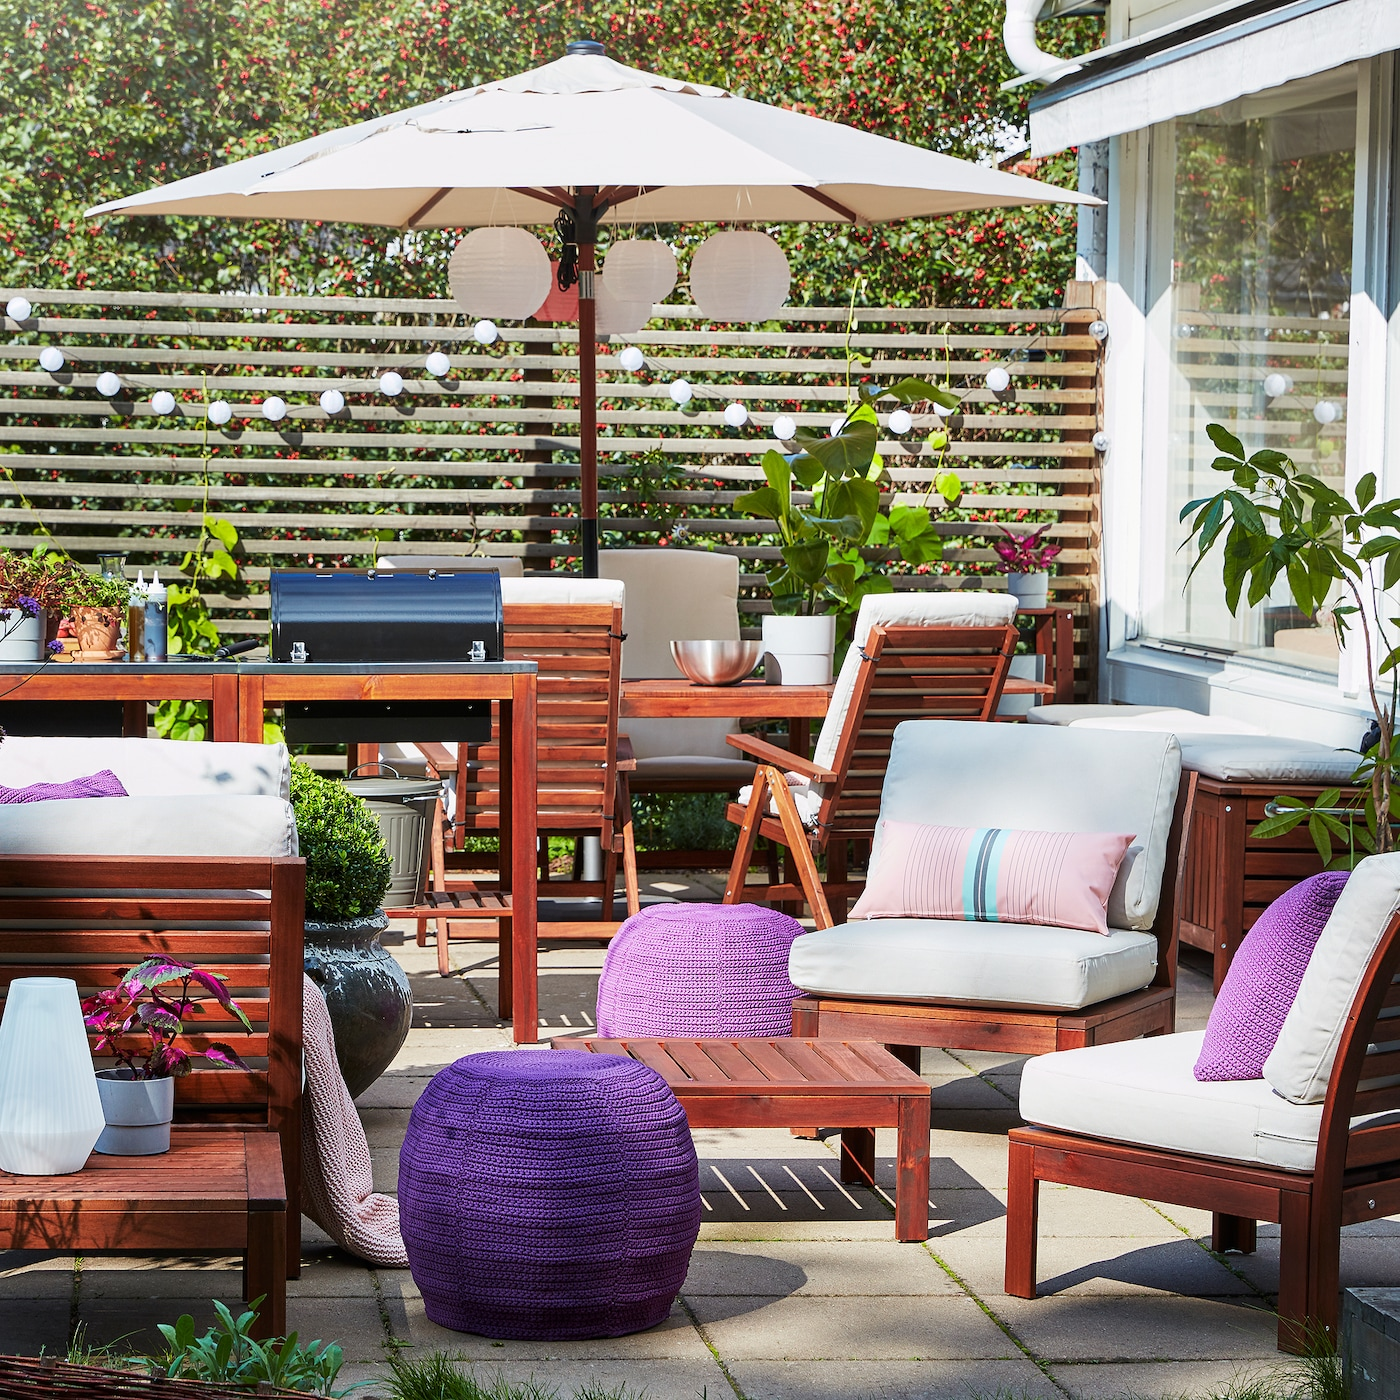 A patio with a barbecue, a 4-seat conversation set in acacia, a beige parasol, purple pouffes and beige outdoor cushions.